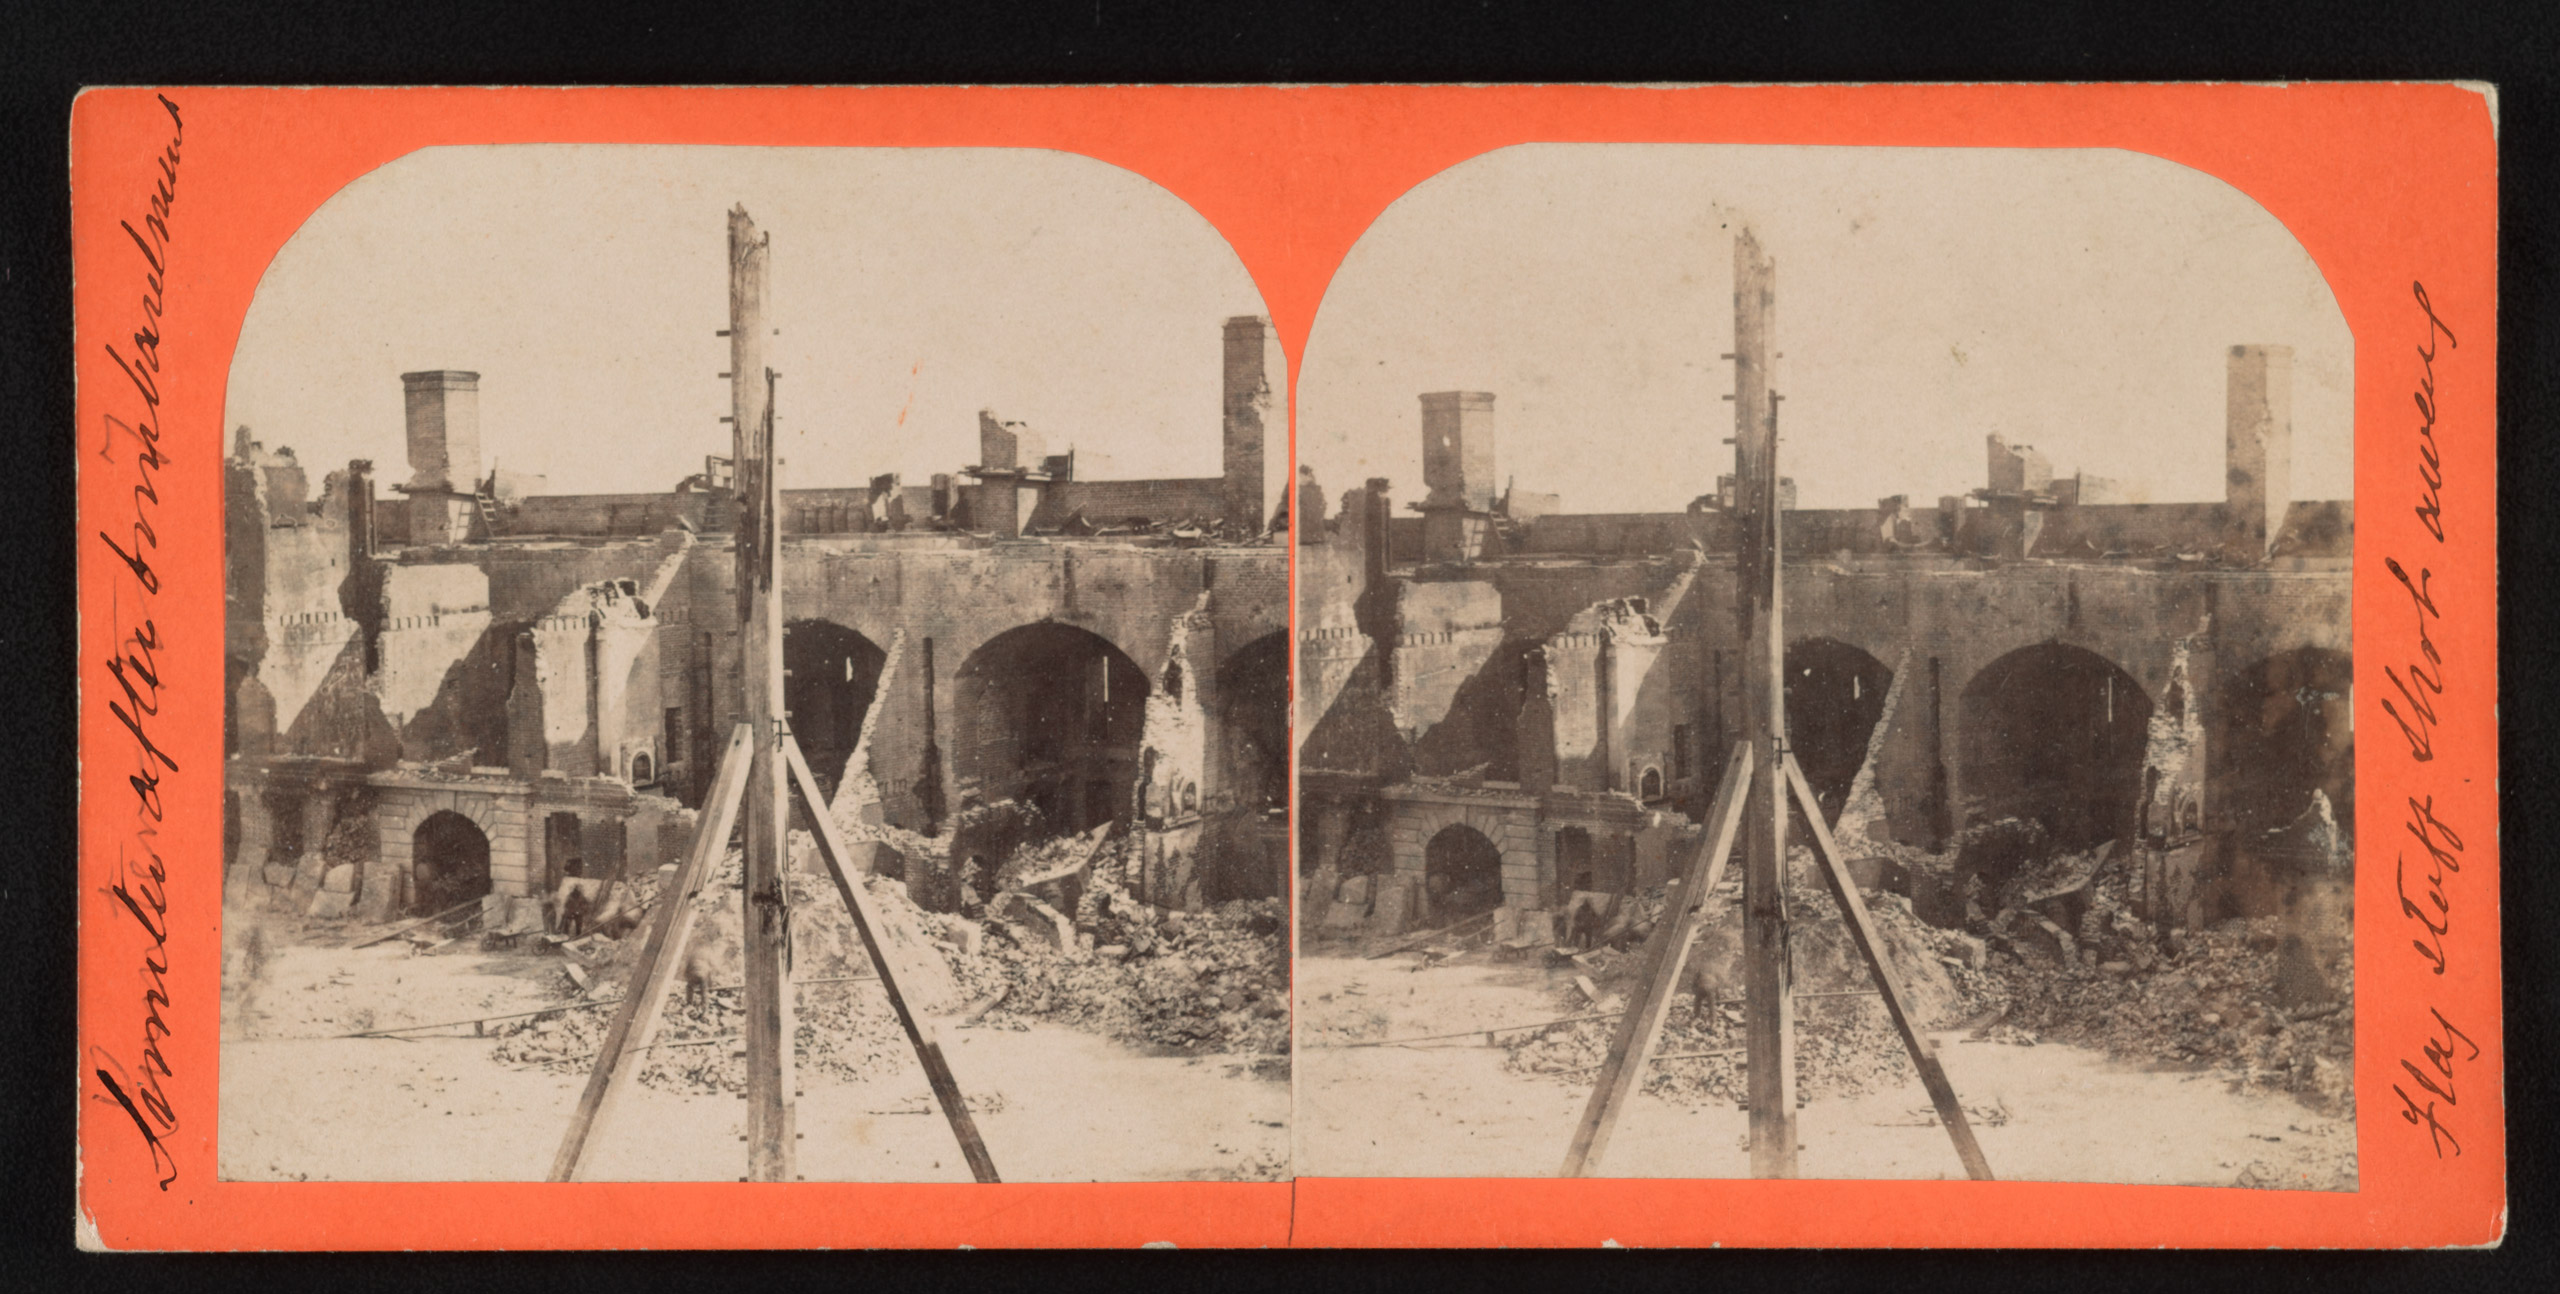 Sumter after bombardment, flag staff shot away. Stereograph from The Robin G. Stanford Collection.